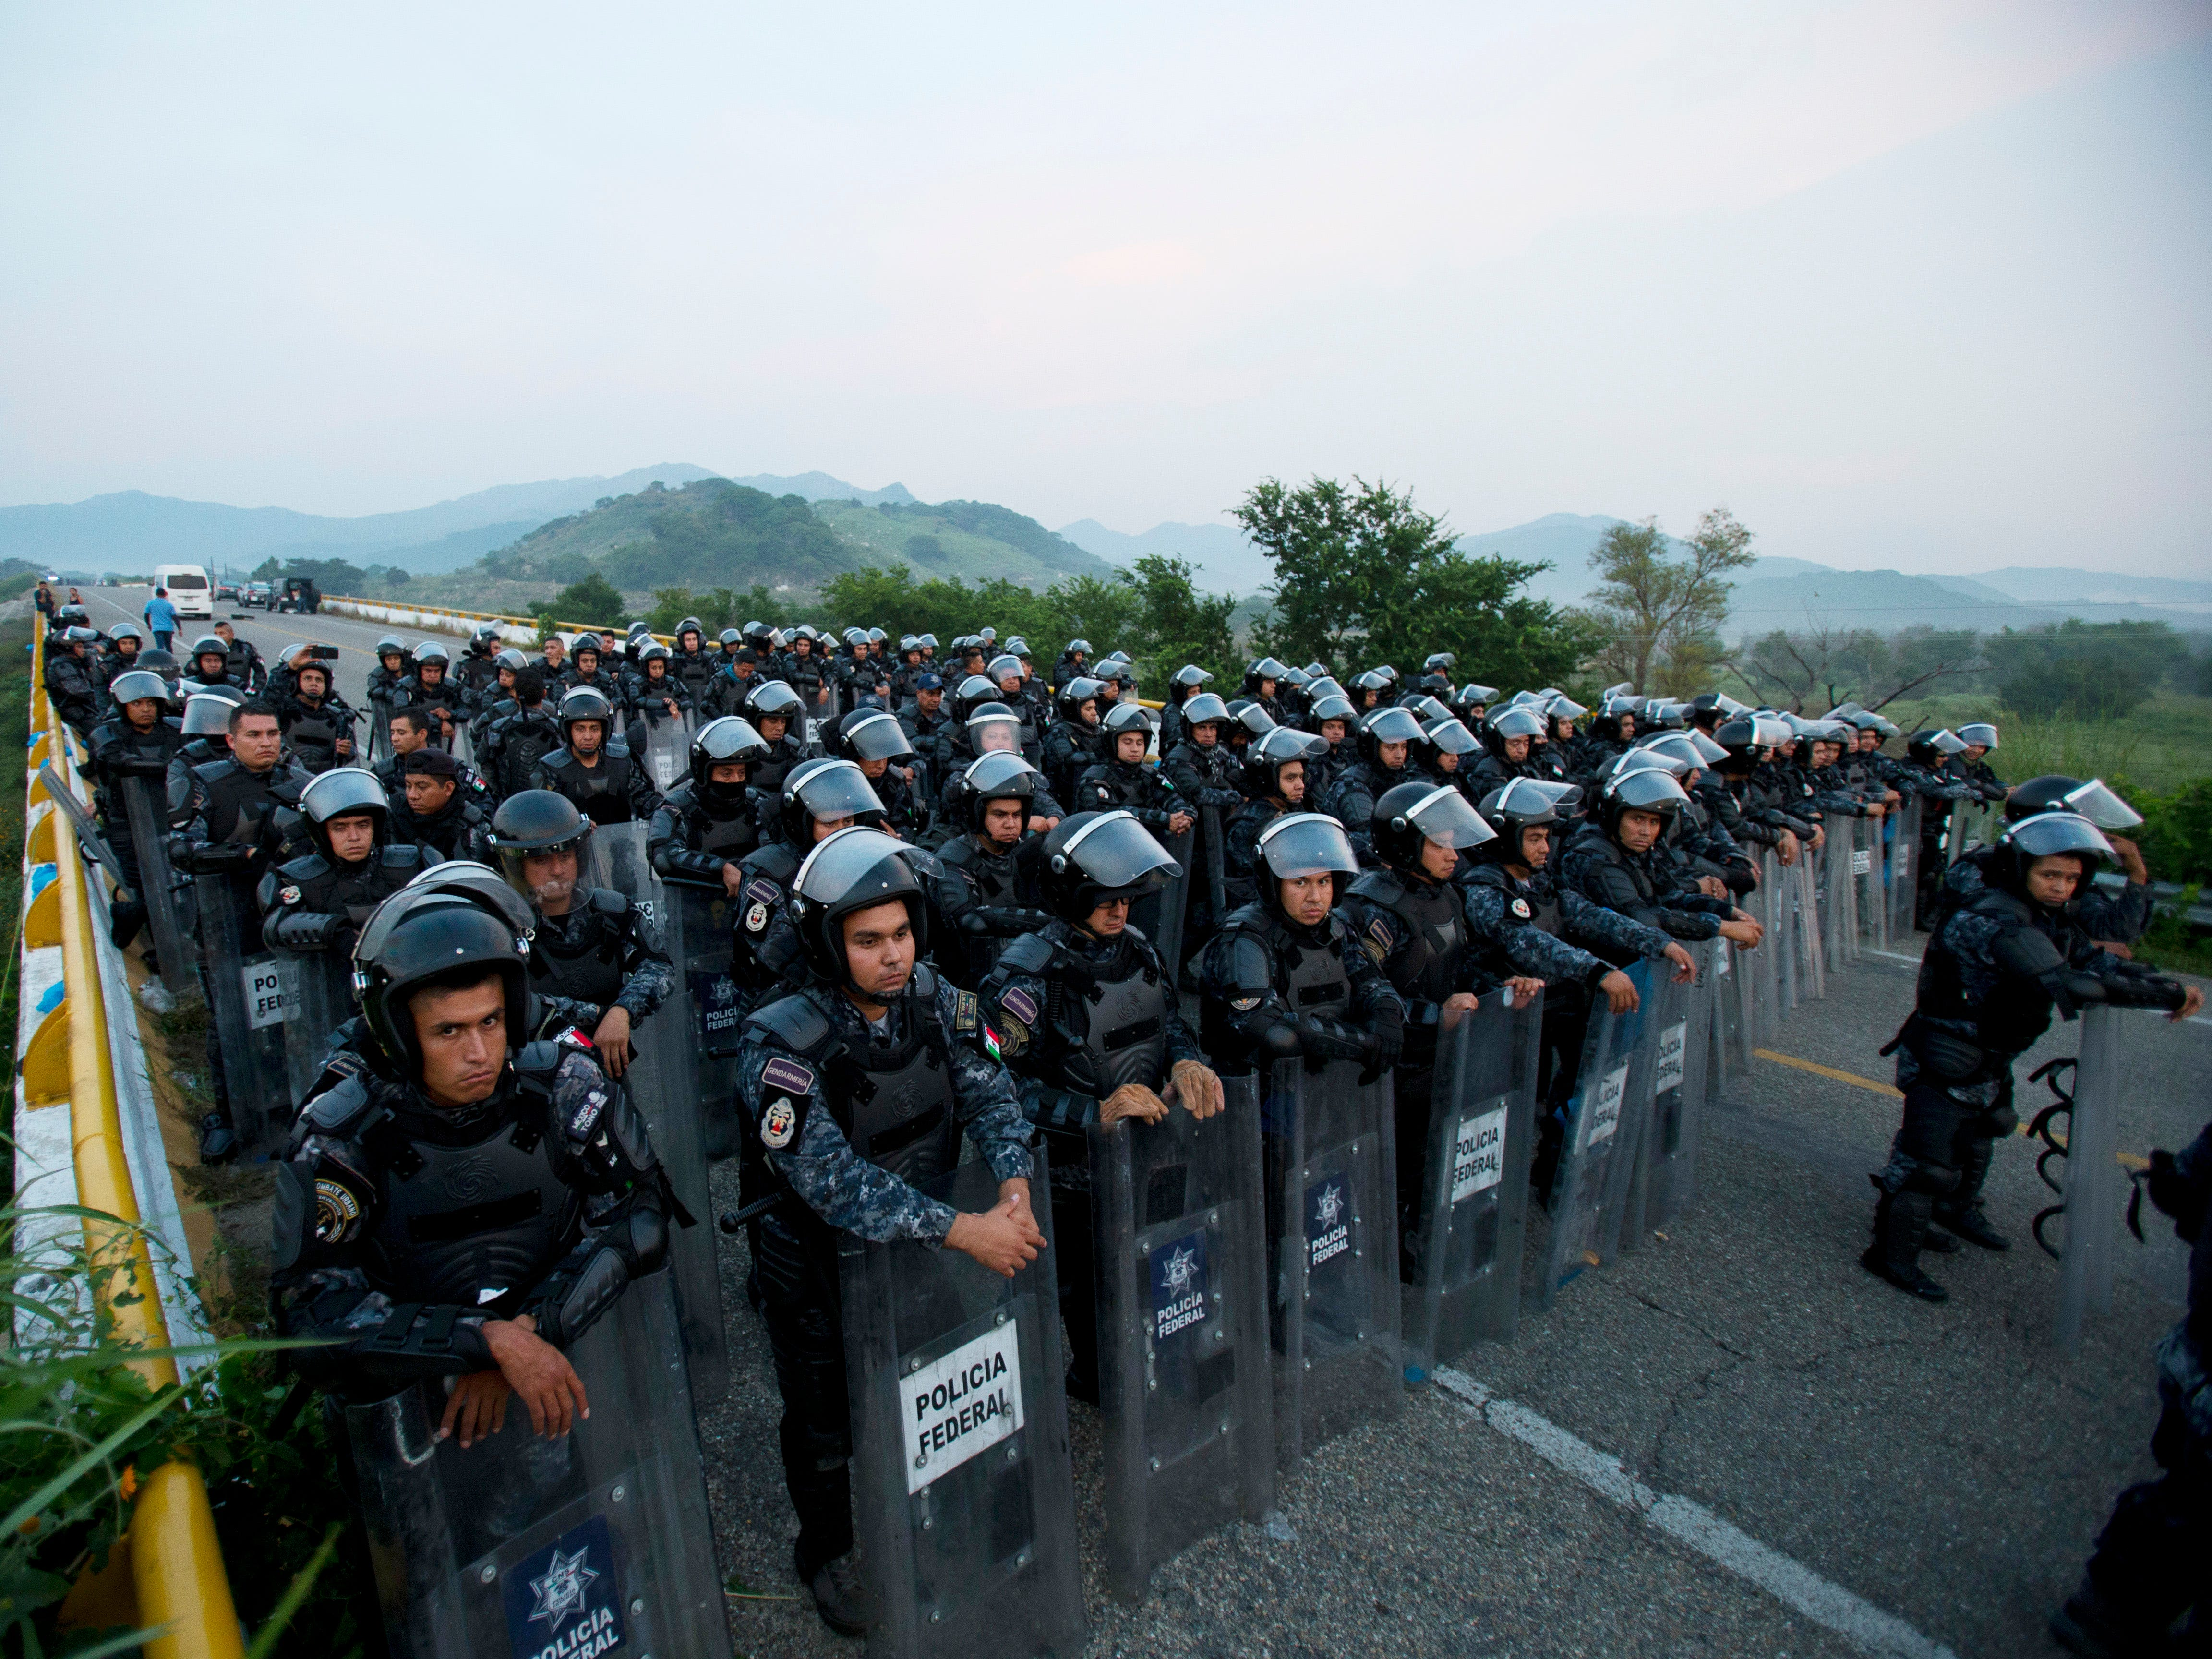 A wall of police in riot gear blocks the highway to stop a caravan of thousands of Central American migrants from advancing, outside Arriaga, Chiapas state, Mexico on Oct. 27, 2018. Eventually police let them pass, with the agreement that the dialogue with authorities would continue at their next stop.